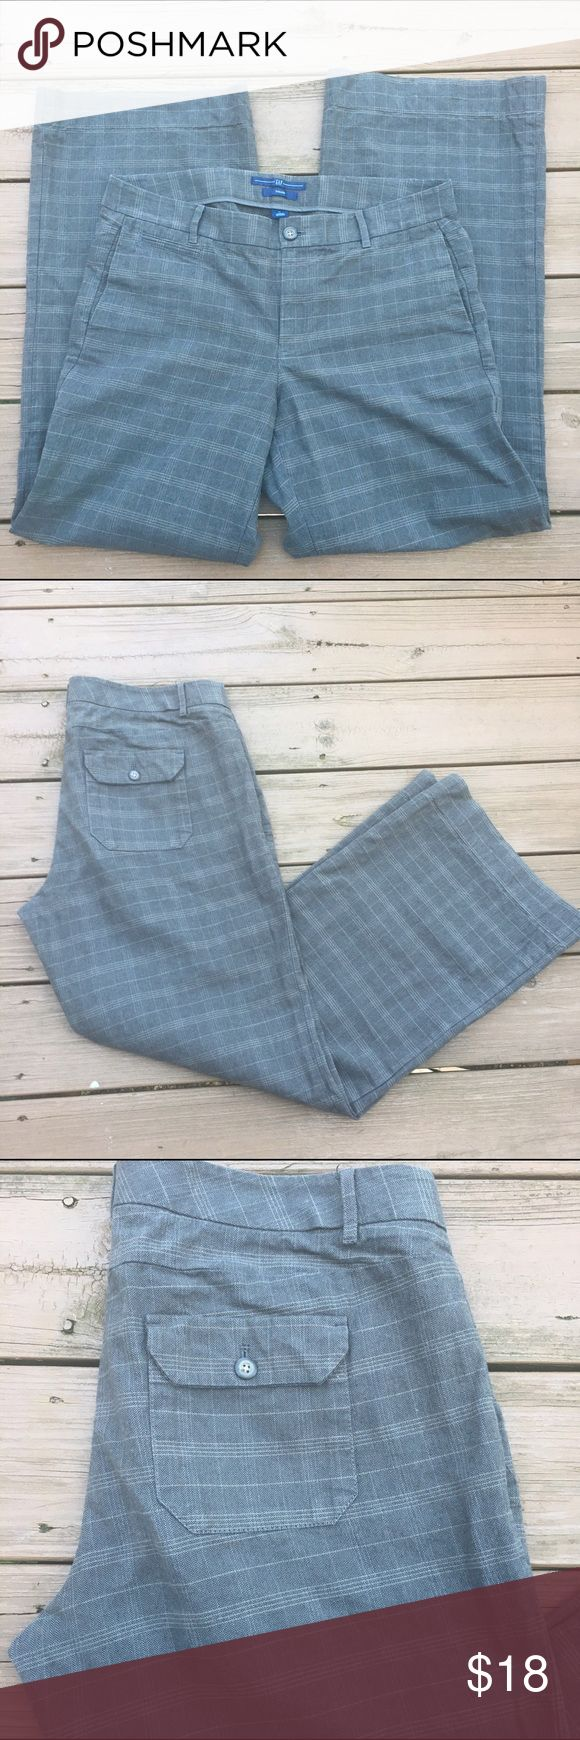 Gap trousers Nice gray patterned gray trousers by Gap. Sz 12. GAP Pants Trousers